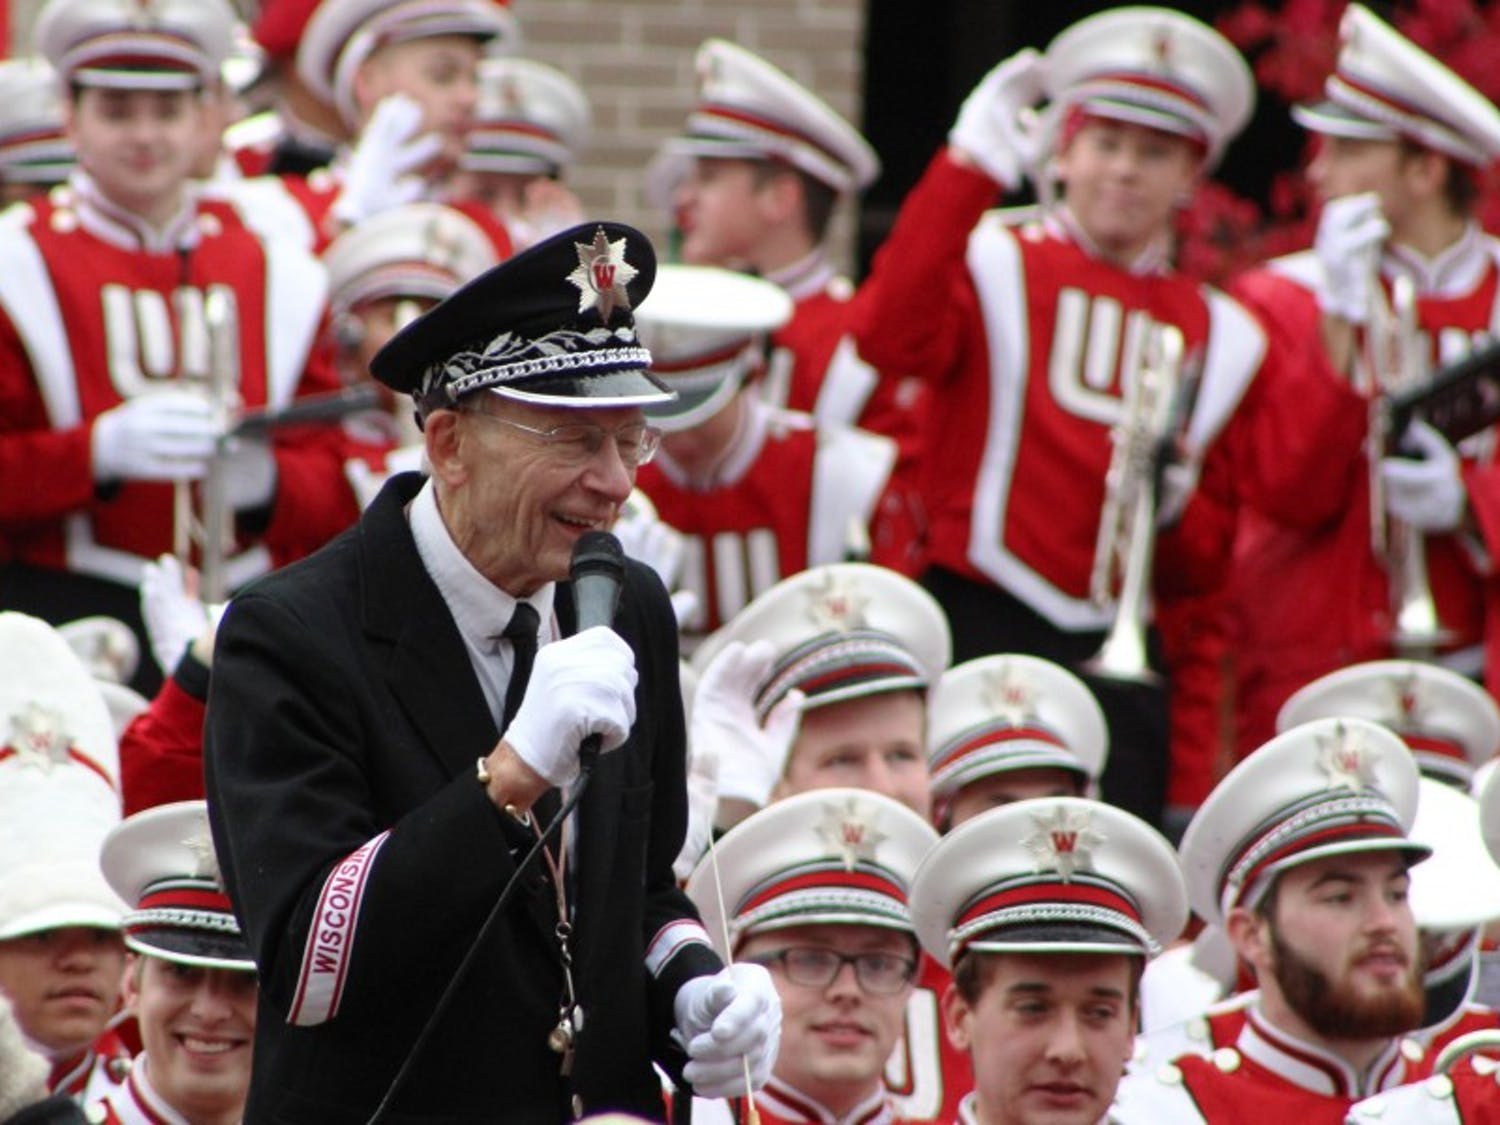 Director of Bands Mike Leckrone stands in front of his marching band for the last time after a career that has lasted half a century.